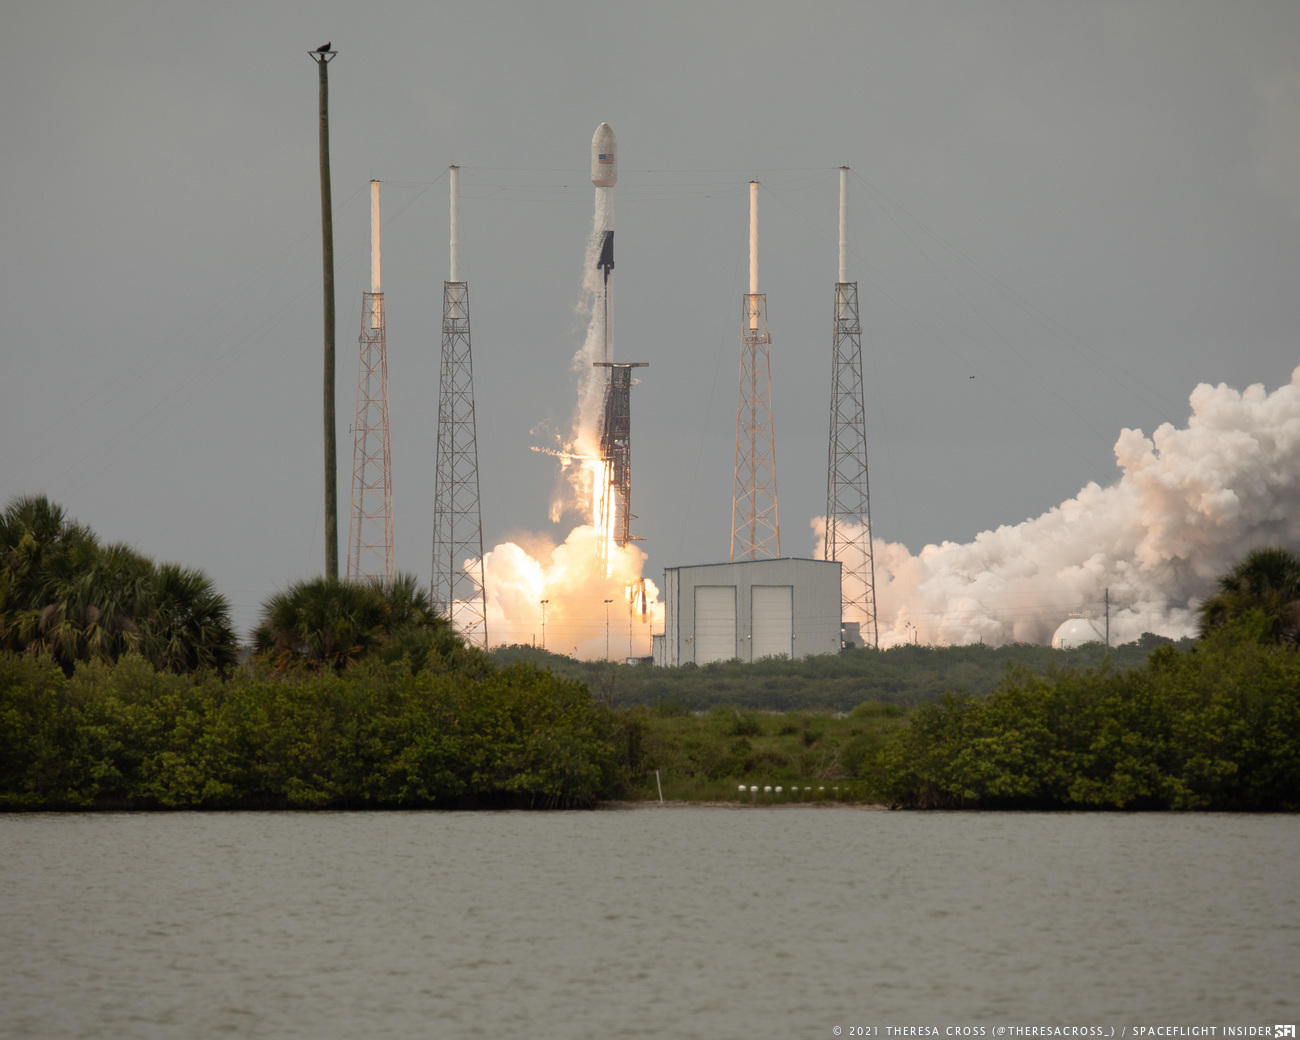 SpaceX's Falcon 9 rocket launches the Transporter-2 rideshare mission. Credit: Theresa Cross / Spaceflight Insider